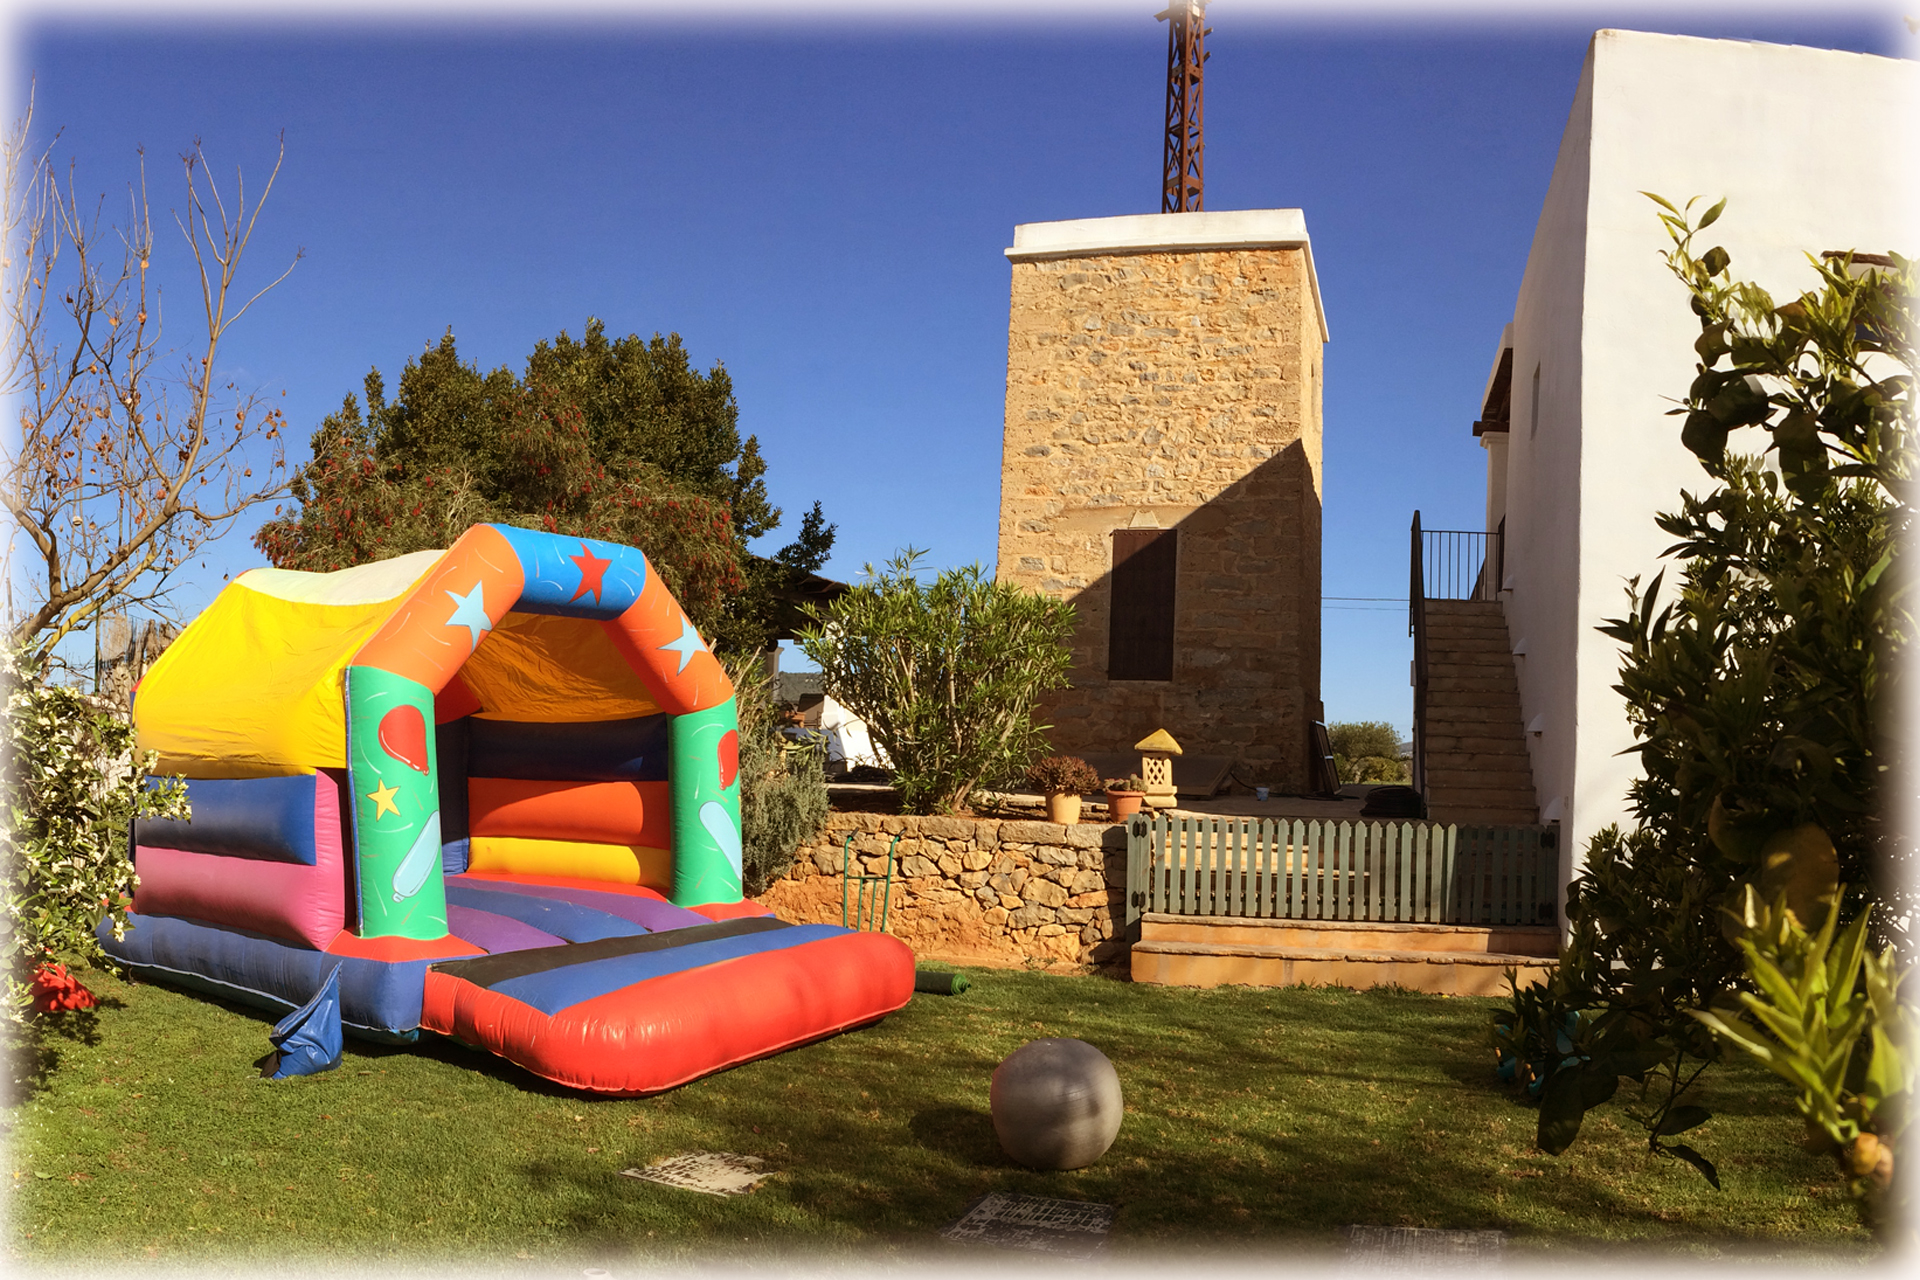 Party Time Bouncy Castle fits perfectly!